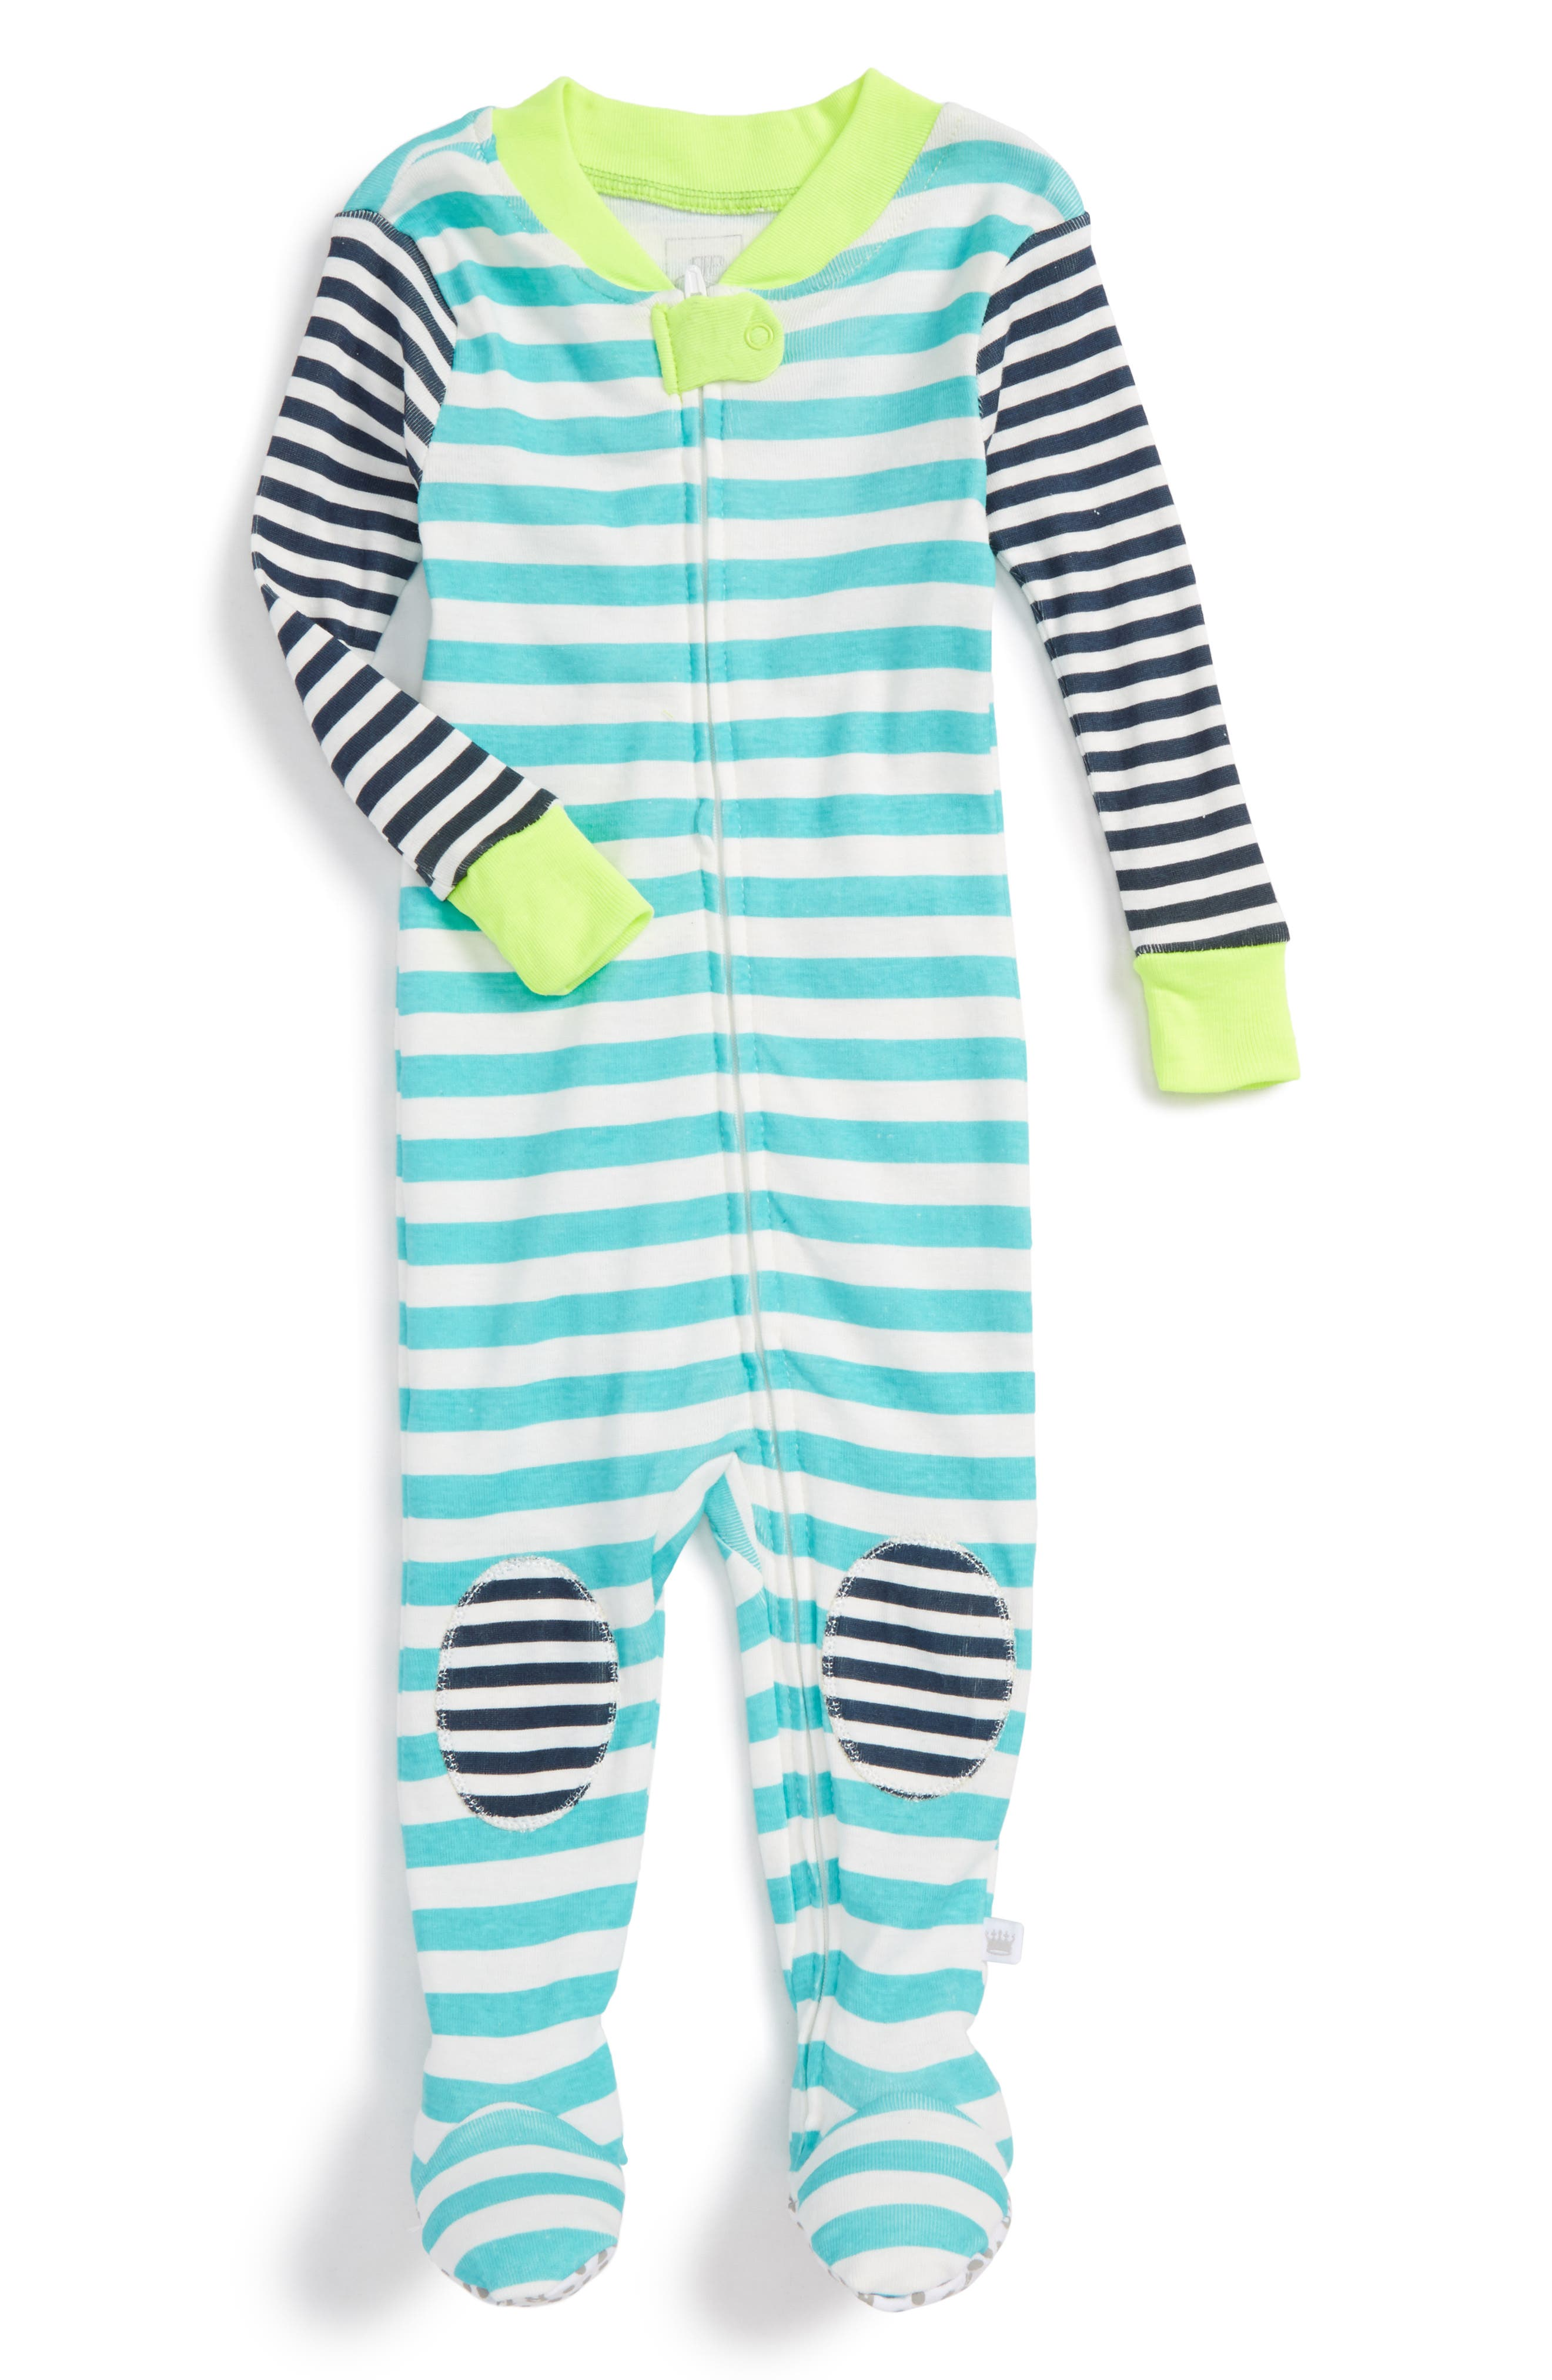 Rosie Pope Fitted One-Piece Footed Pajamas (Baby Boys)